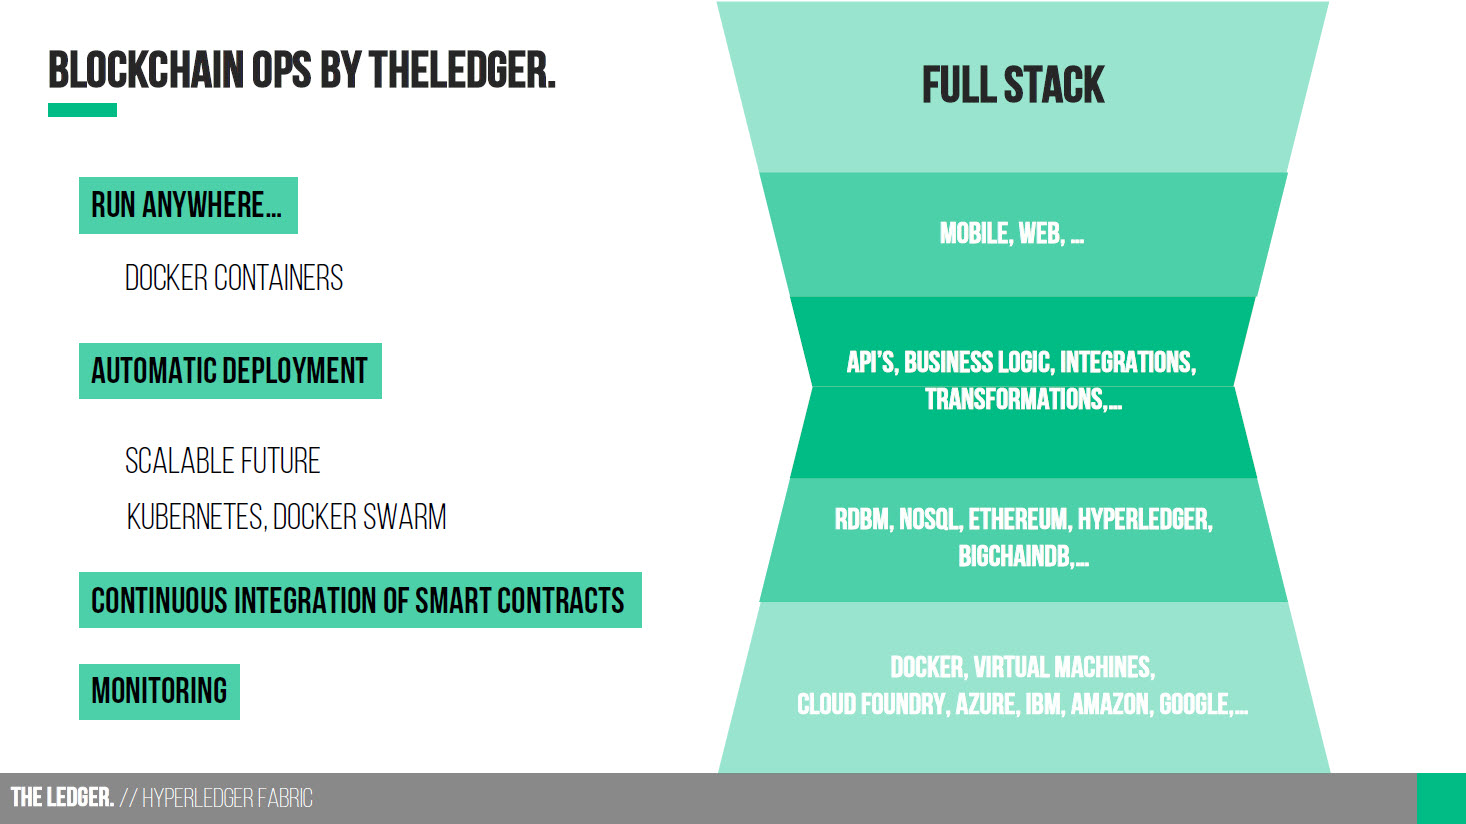 Hyperledger Webinar Thomas Marckx full stack